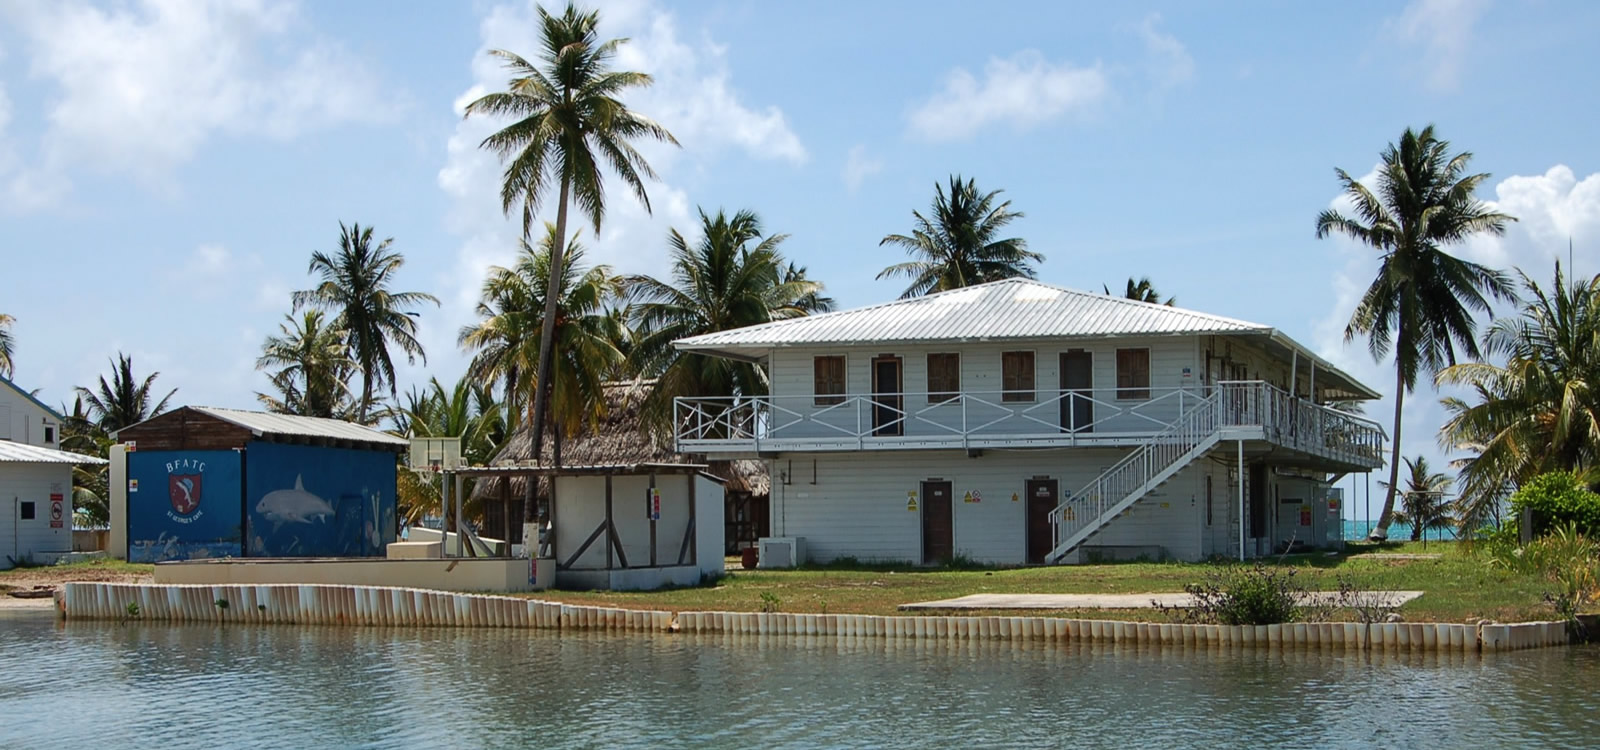 Beachfront Property for Sale, St George's Caye, Belize - 7th Heaven Properties